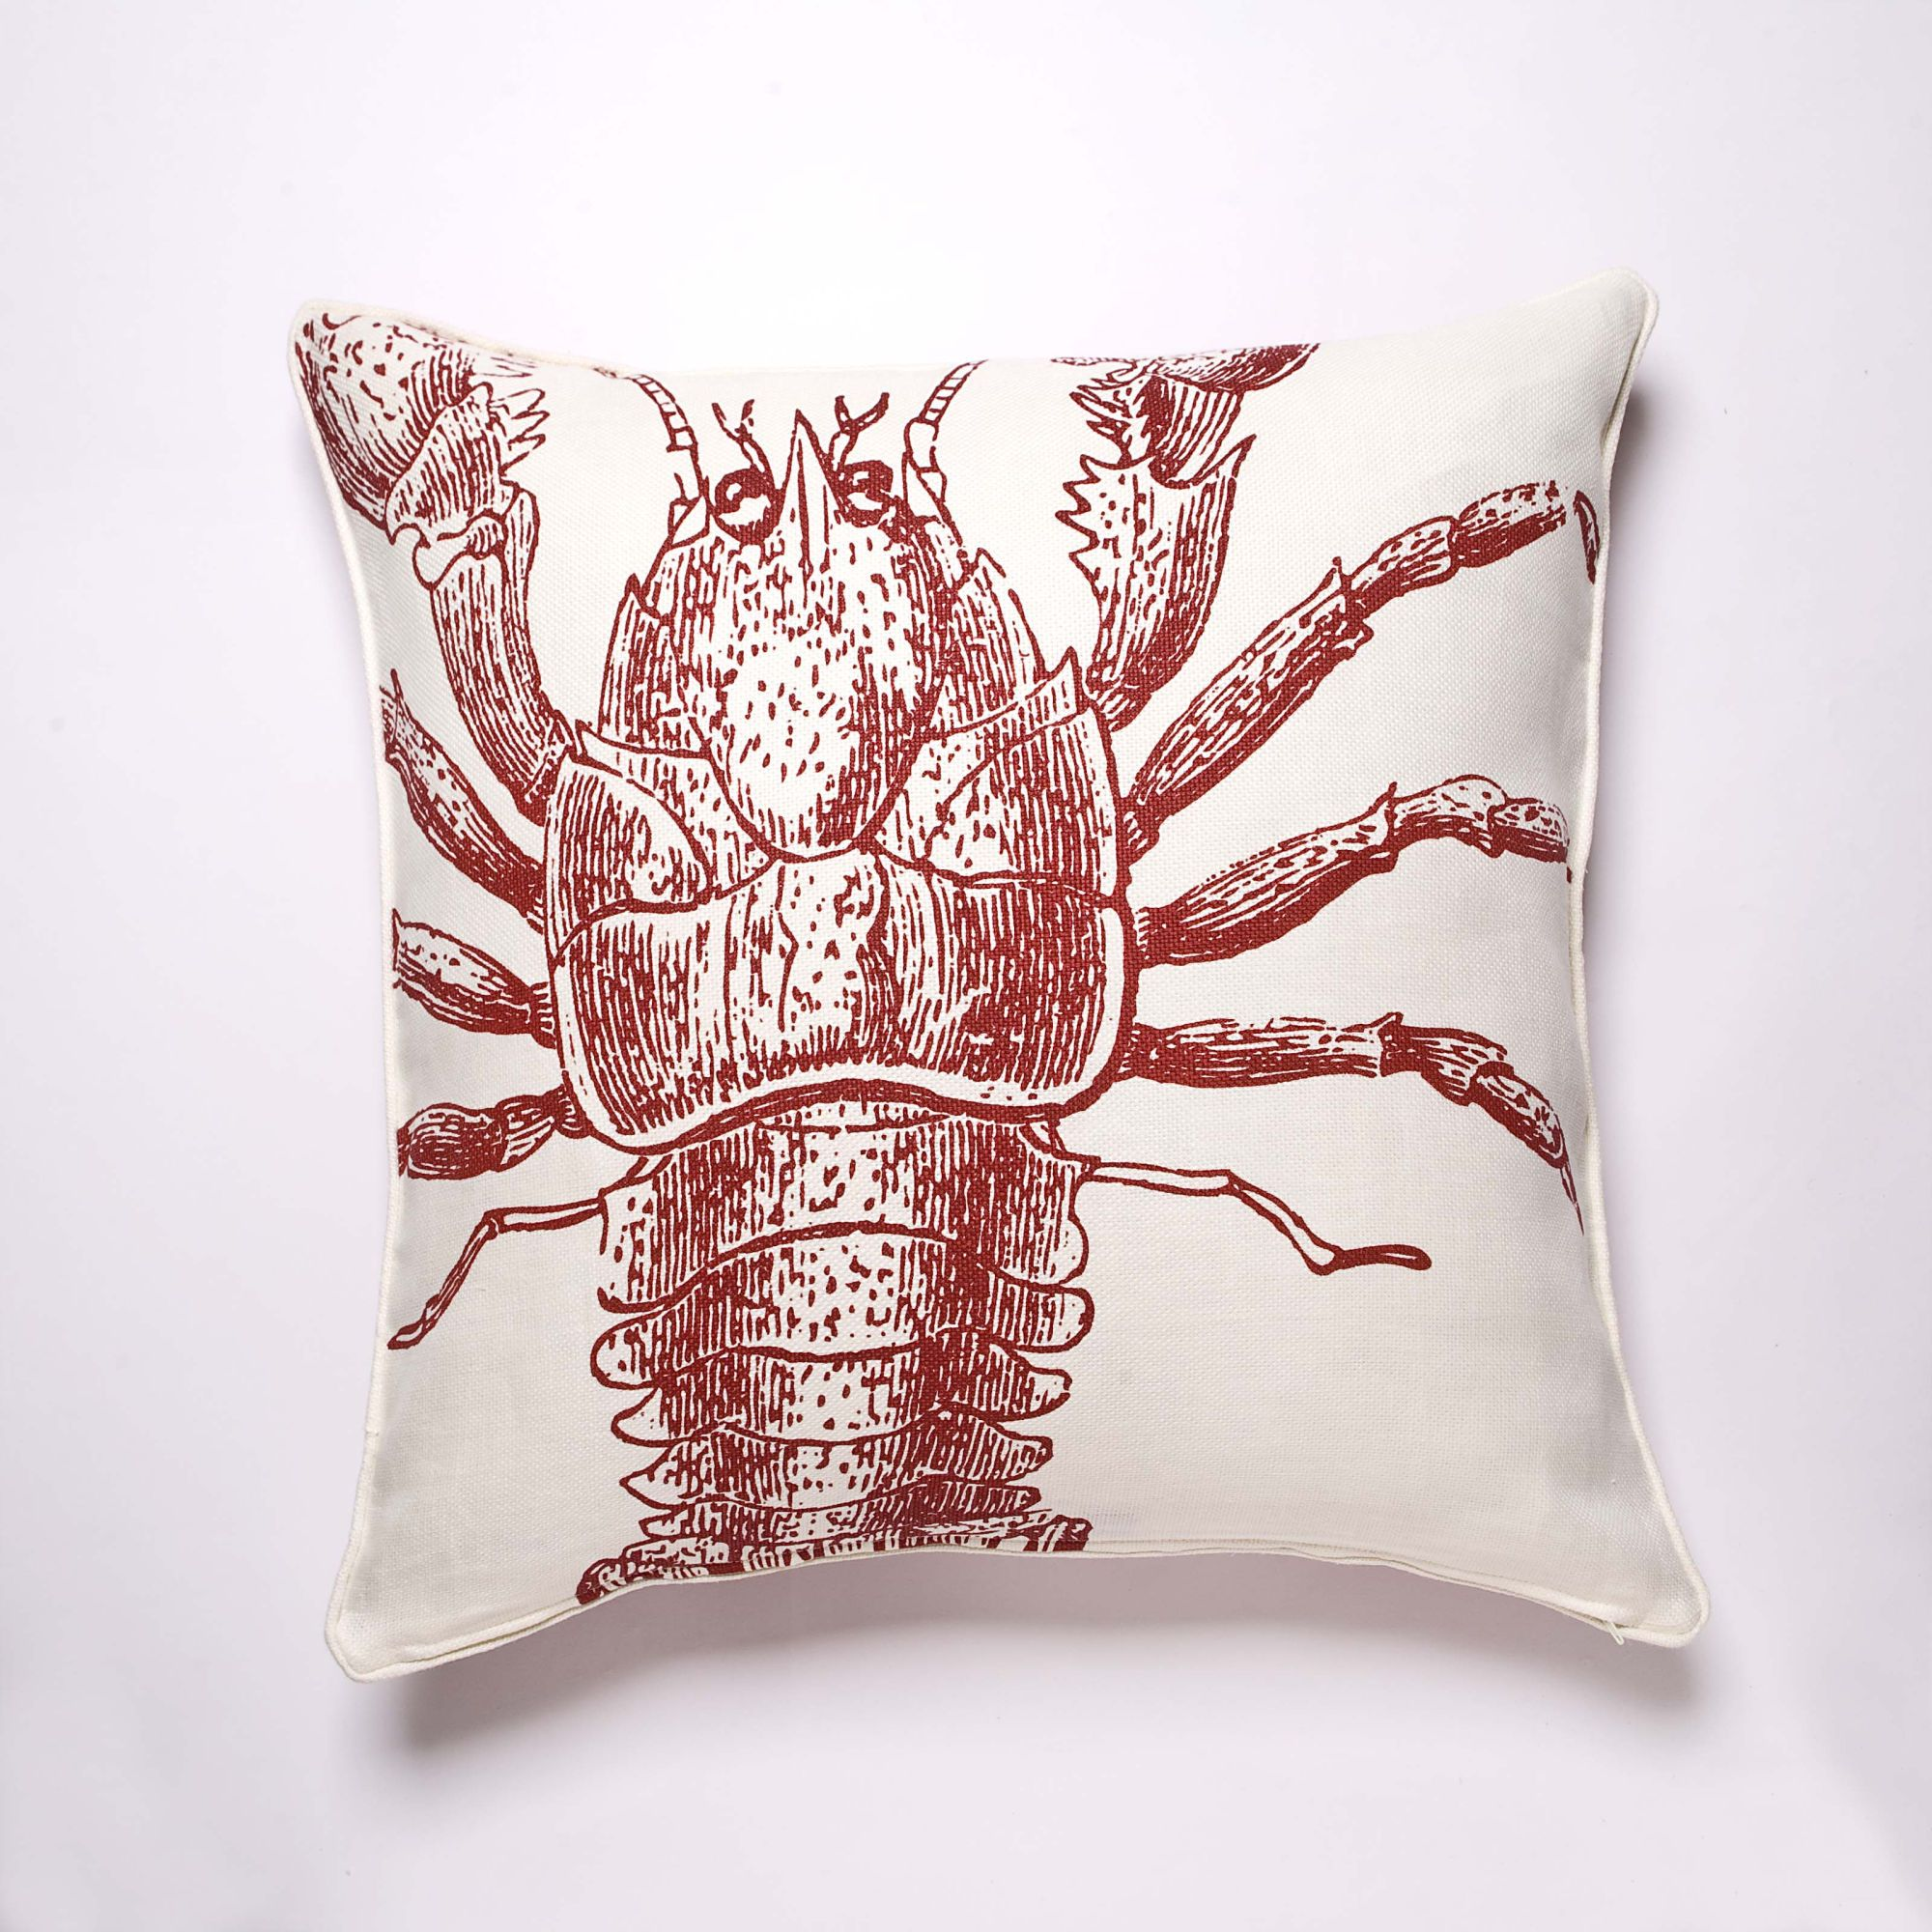 Lobster Pillow by Thomas Paul  #JoesCrabShack #JoesMaineEvent